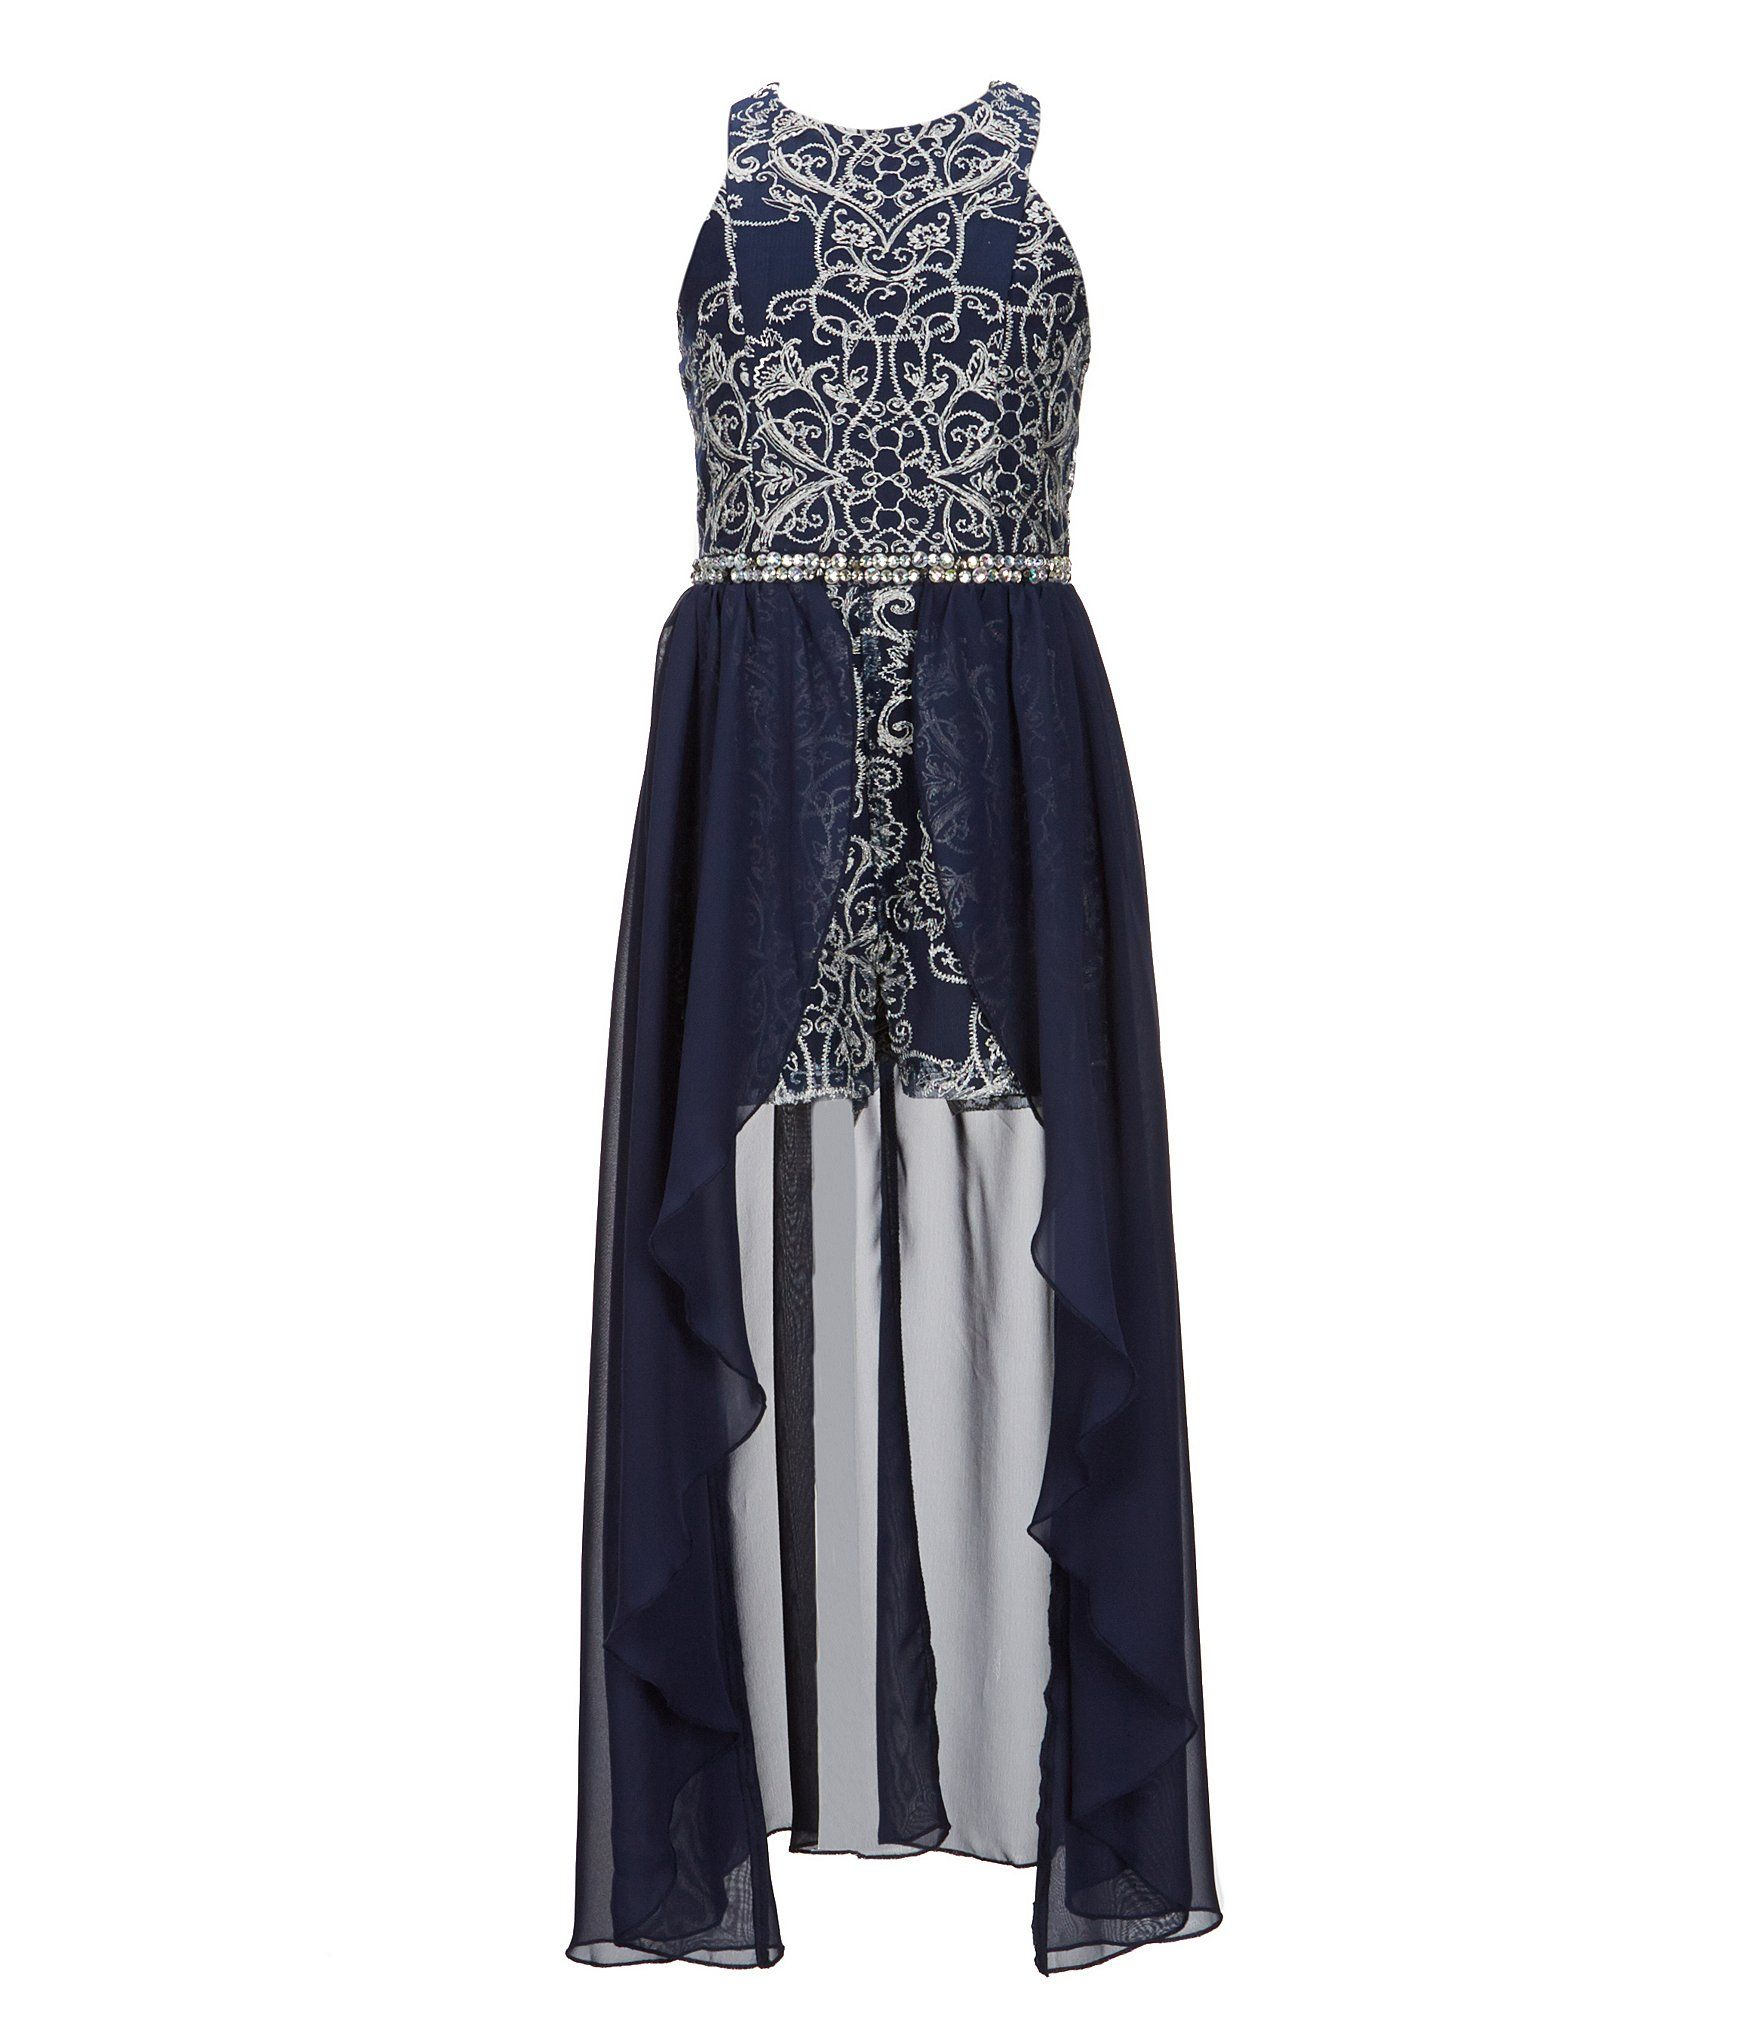 101c6645429f Shop for Xtraordinary Big Girls 7-16 Embroidered Maxi Romper at Dillards.com.  Visit Dillards.com to find clothing